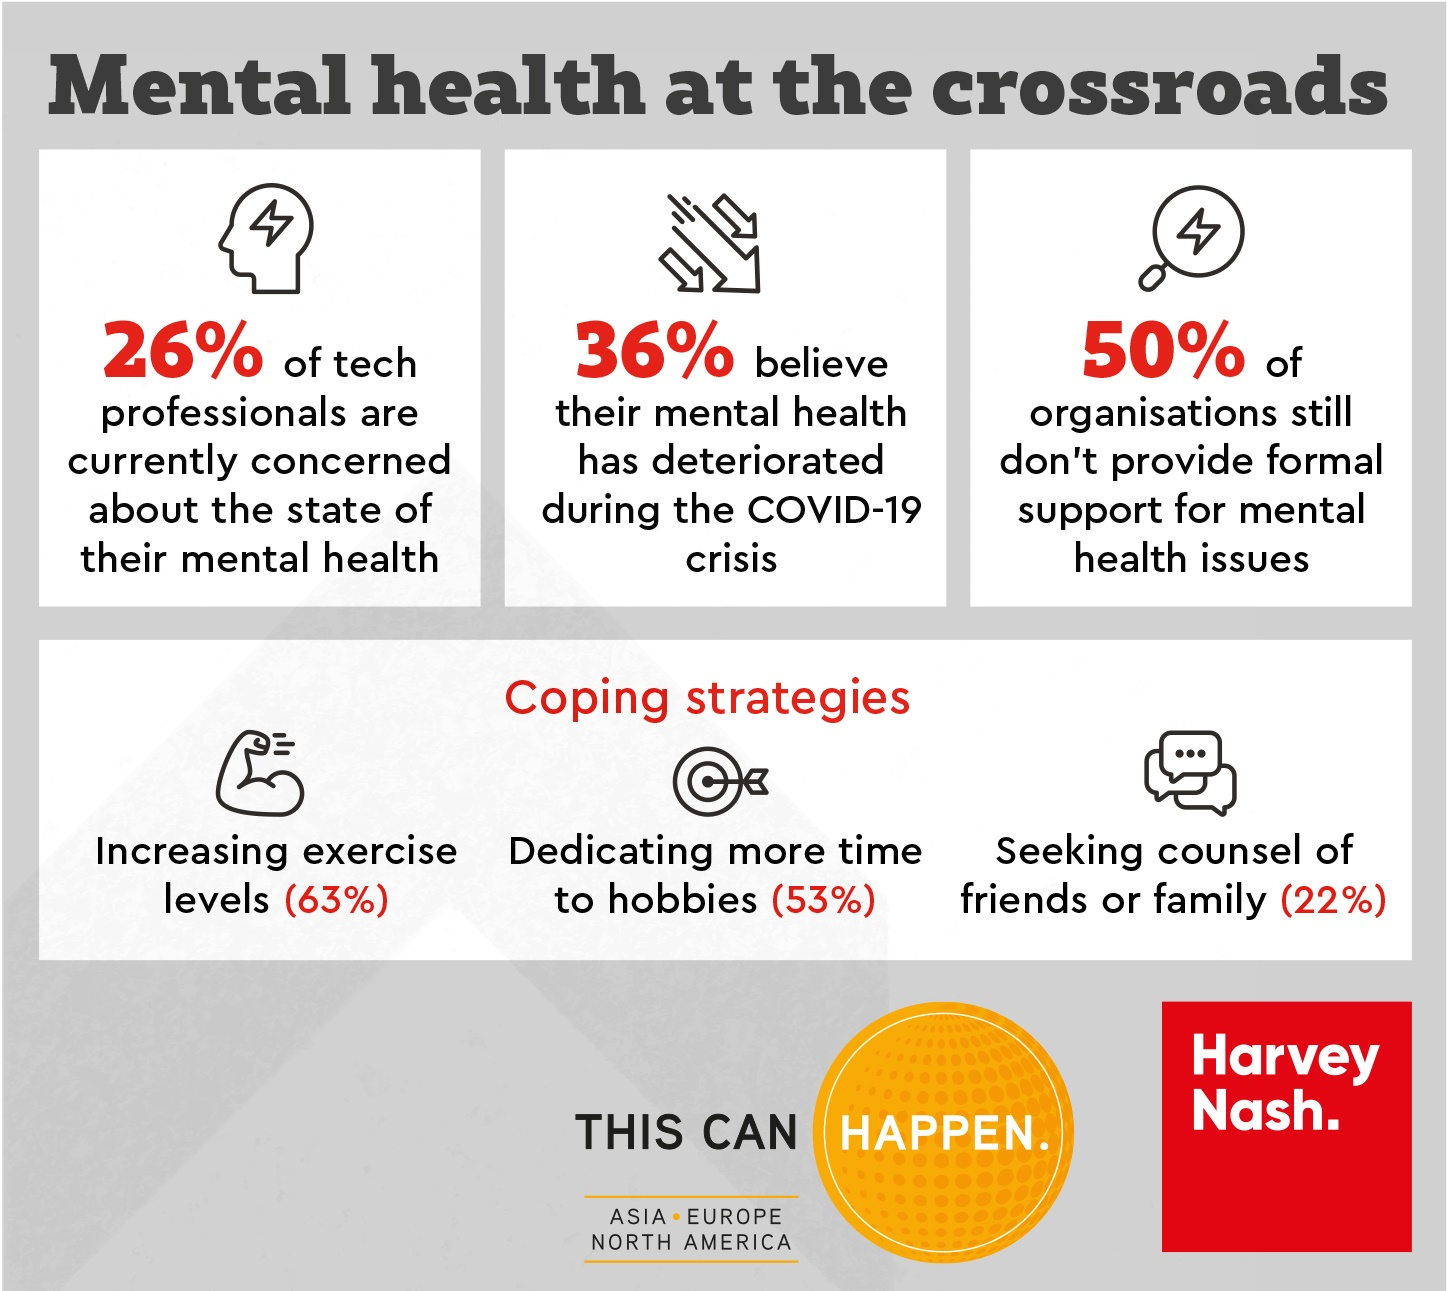 Mental health at the crossroads